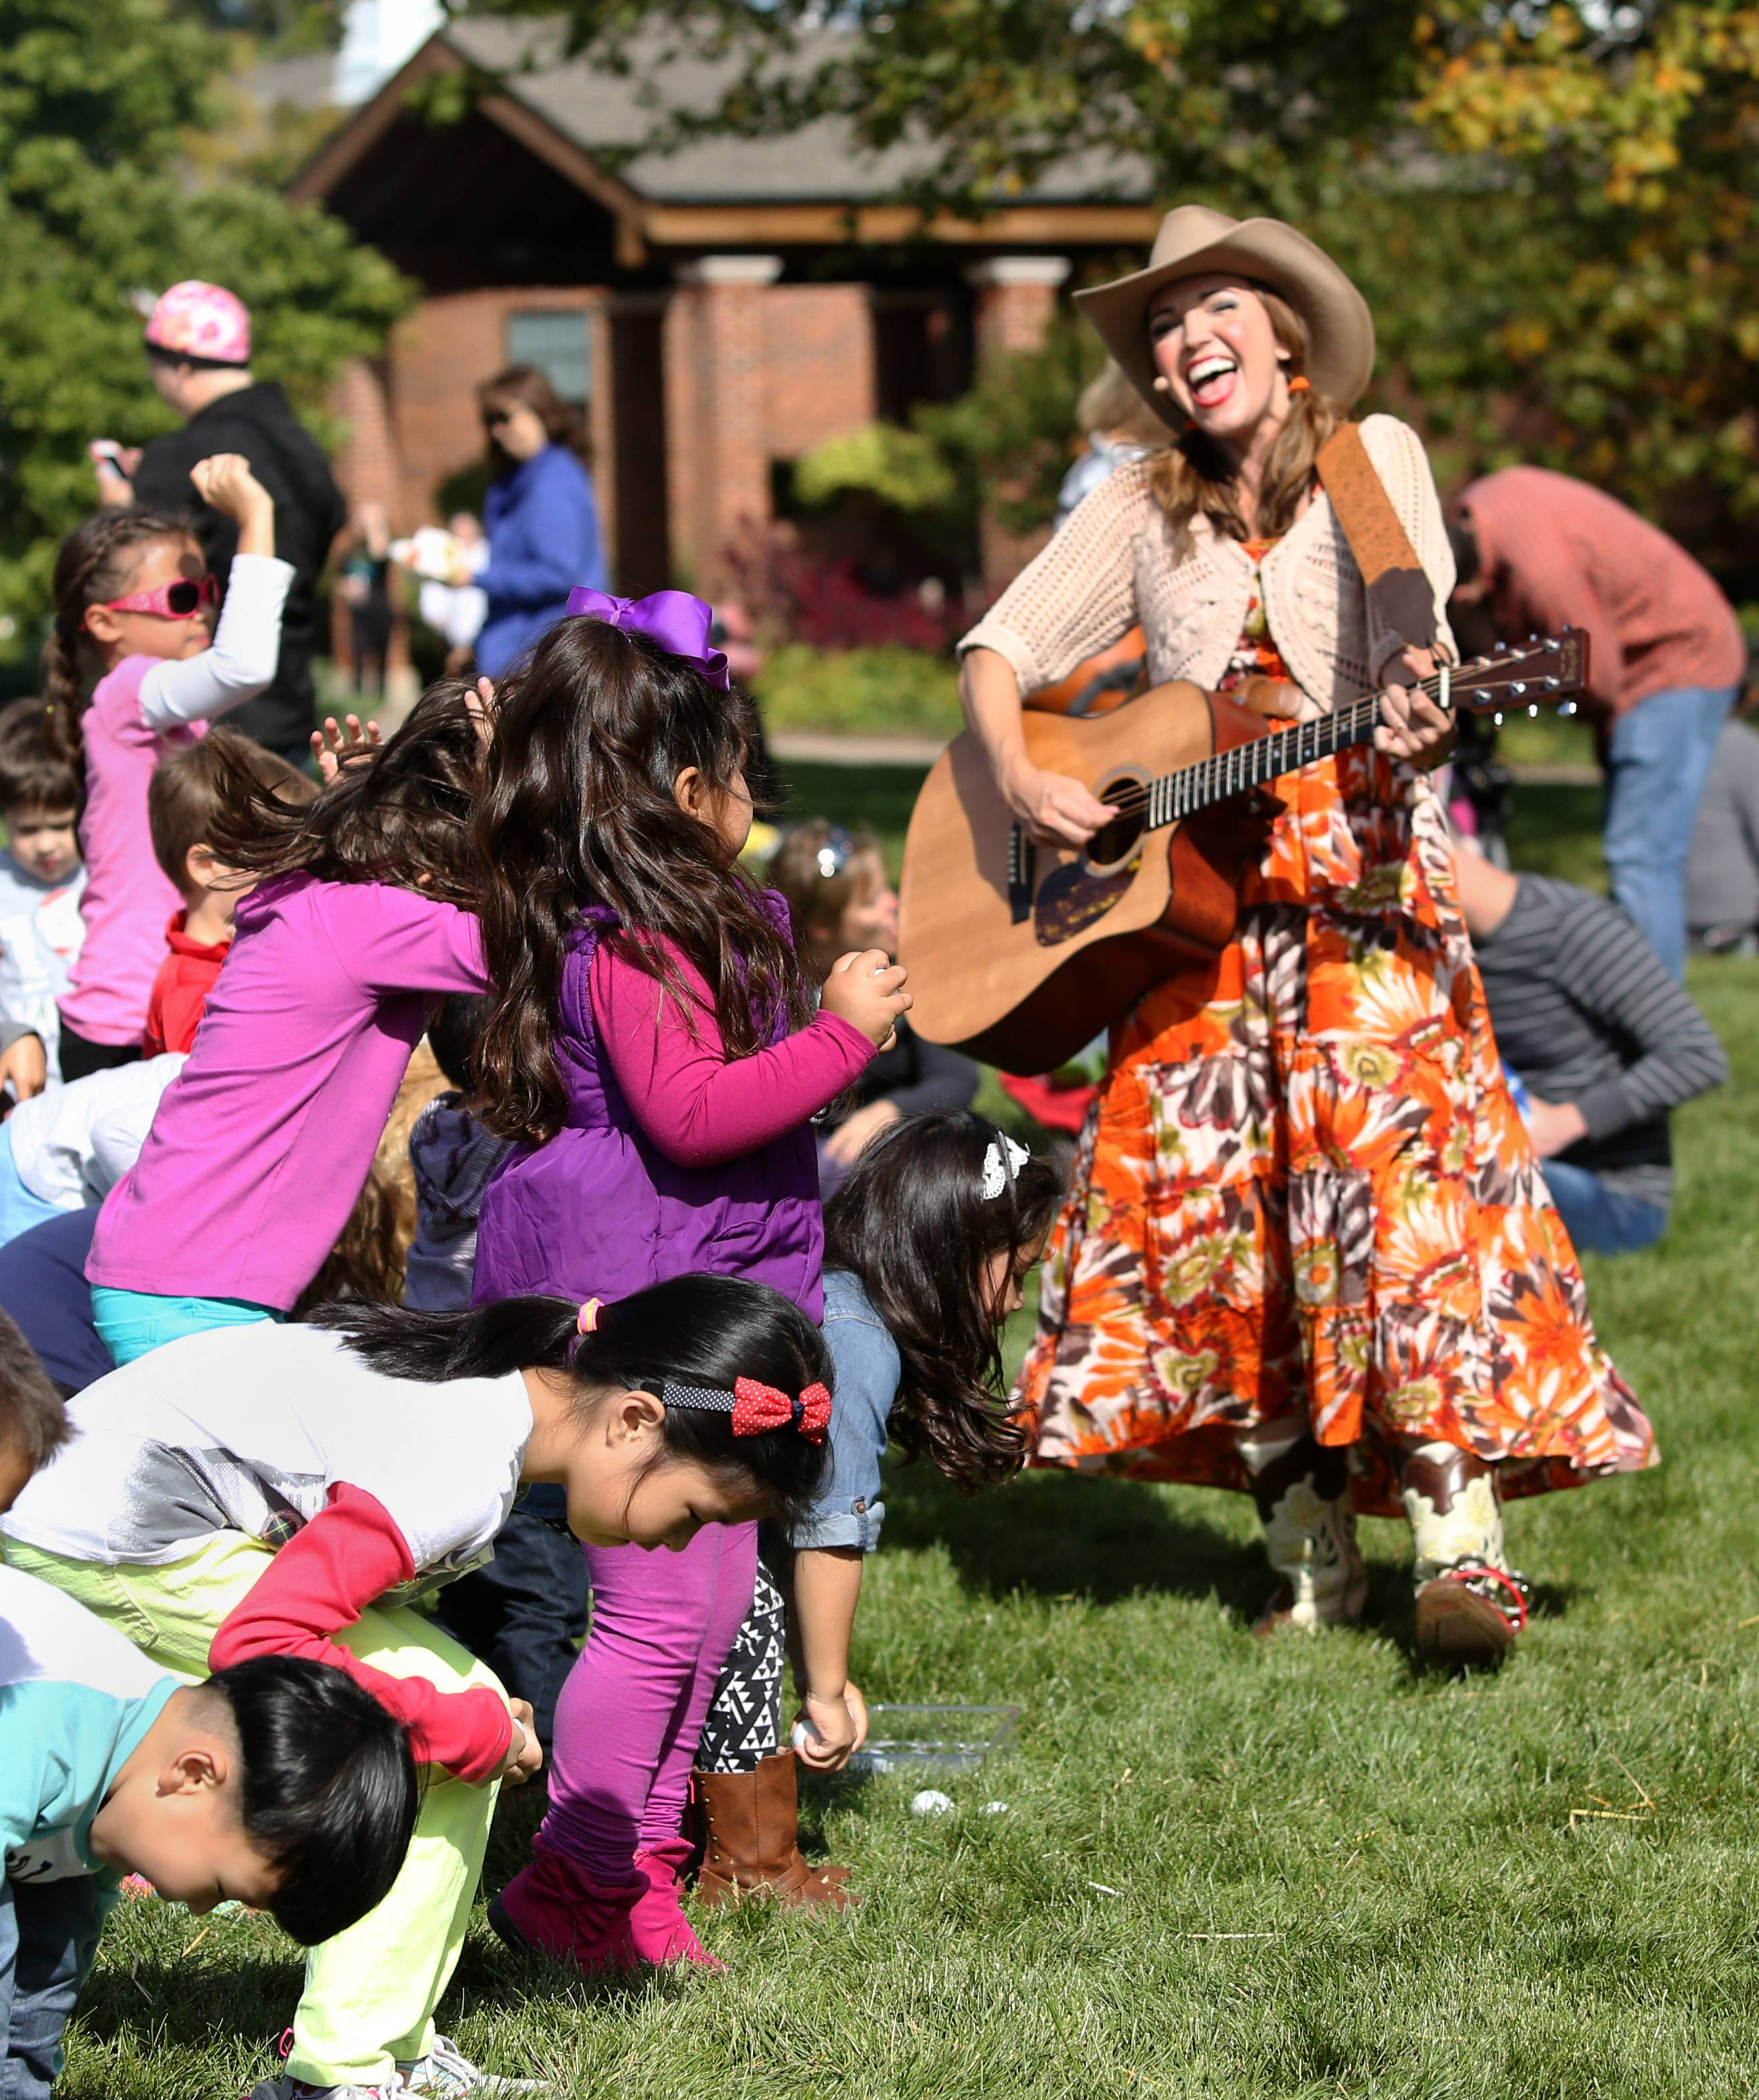 Jamie Martin performs her Miss Jamie's Farm Kids Music Show during the Cantigny Park one-day fall festival, Saturday, October 10, 2015 in Wheaton. A professional actress and singer, Jamie Martin takes kids on an imaginative adventure to her farm where they learn the values of hard work, kindness and healthy eating.